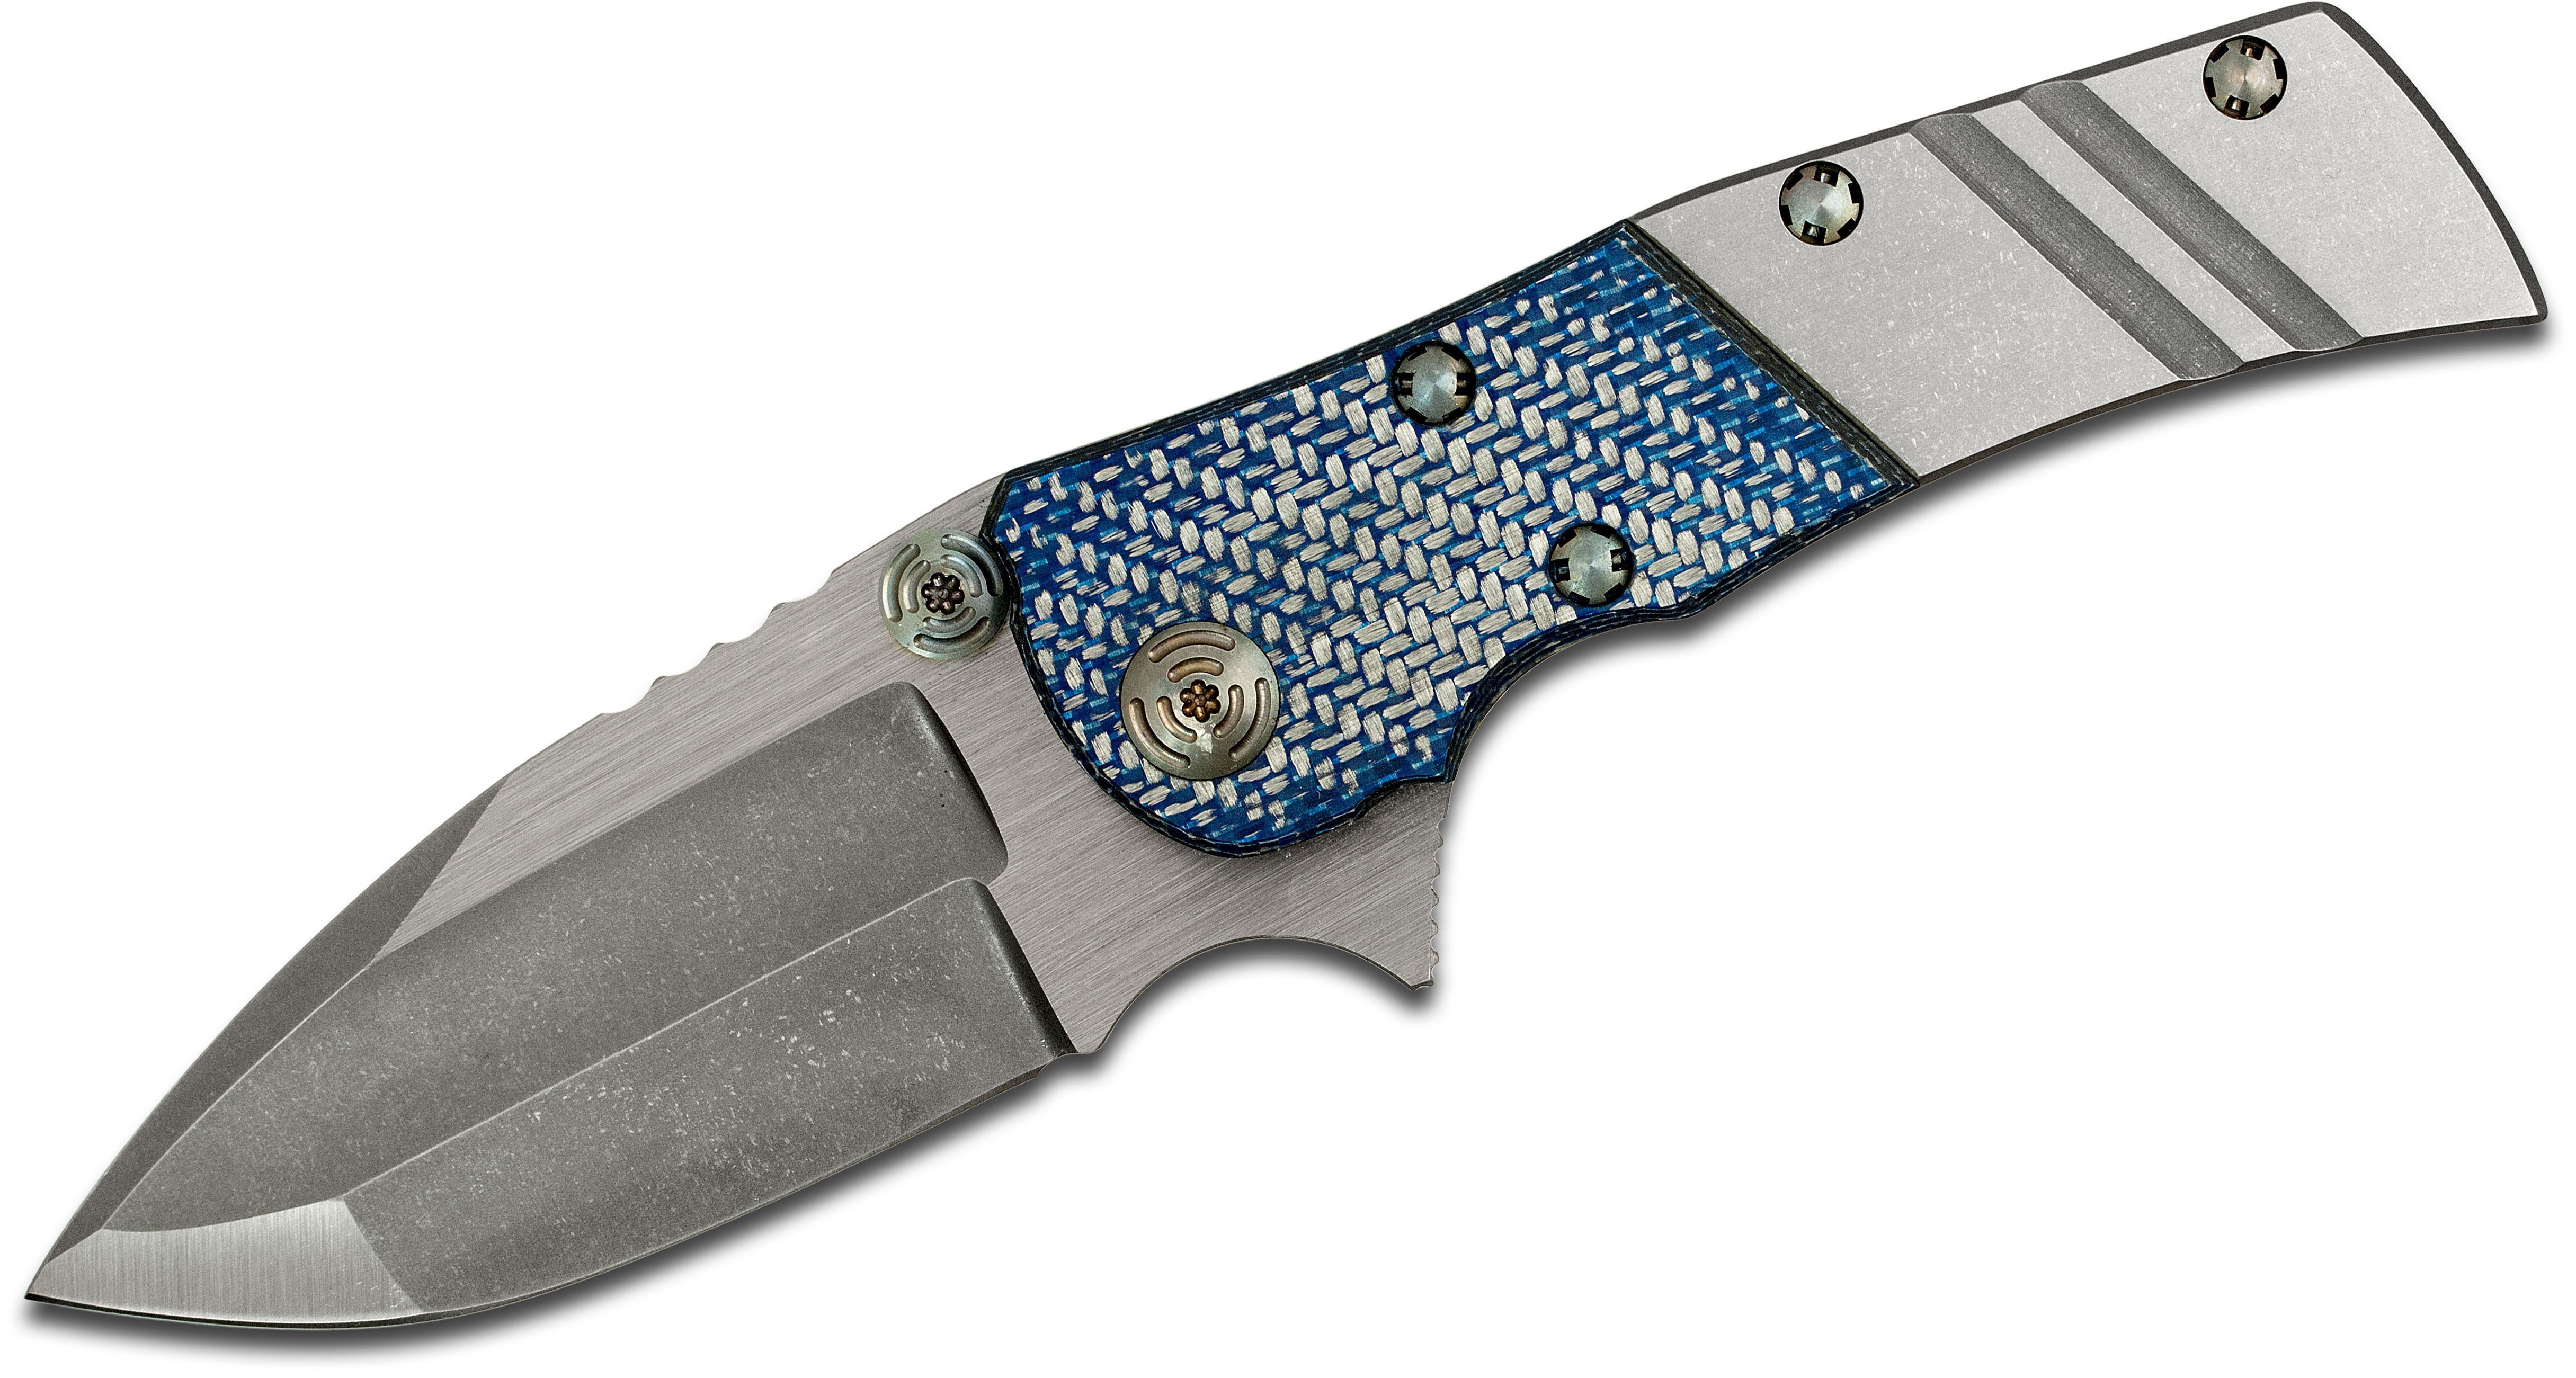 Mikkel Willumsen Custom Classic UrbanTactical Flipper 3.55 inch CPM-154 Two-Tone Blade, Titanium Handles with Blue Silver Twill Bolster